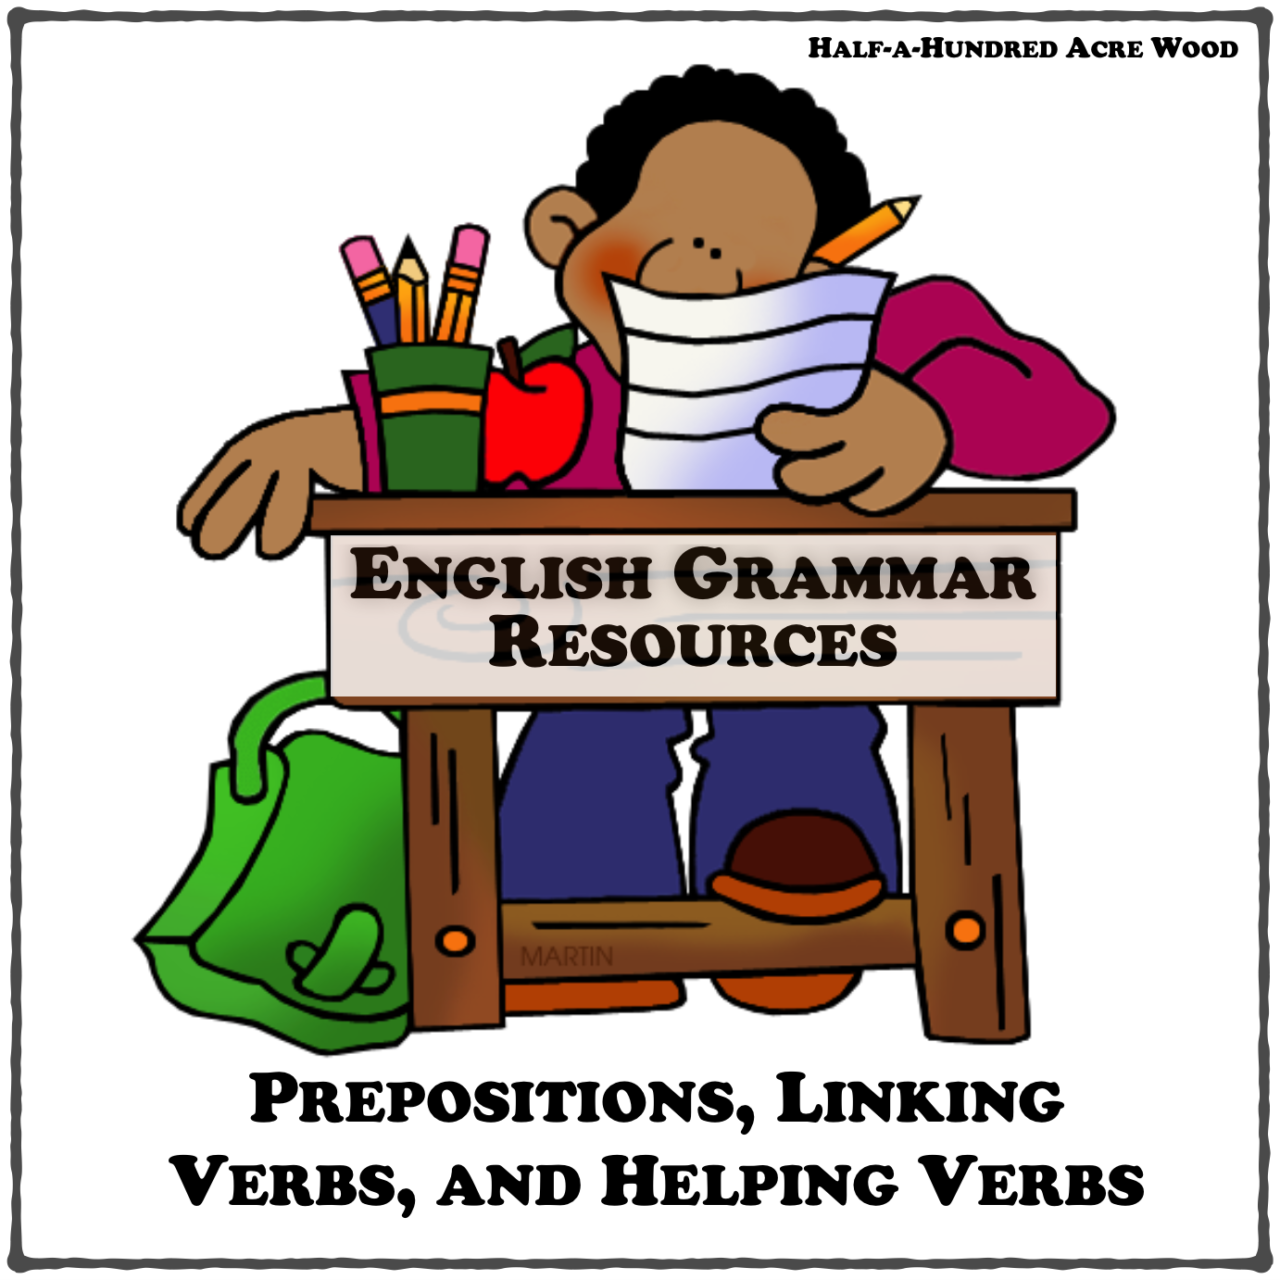 English Grammar Resources Prepositions Linking Helping Verbs Diagramming